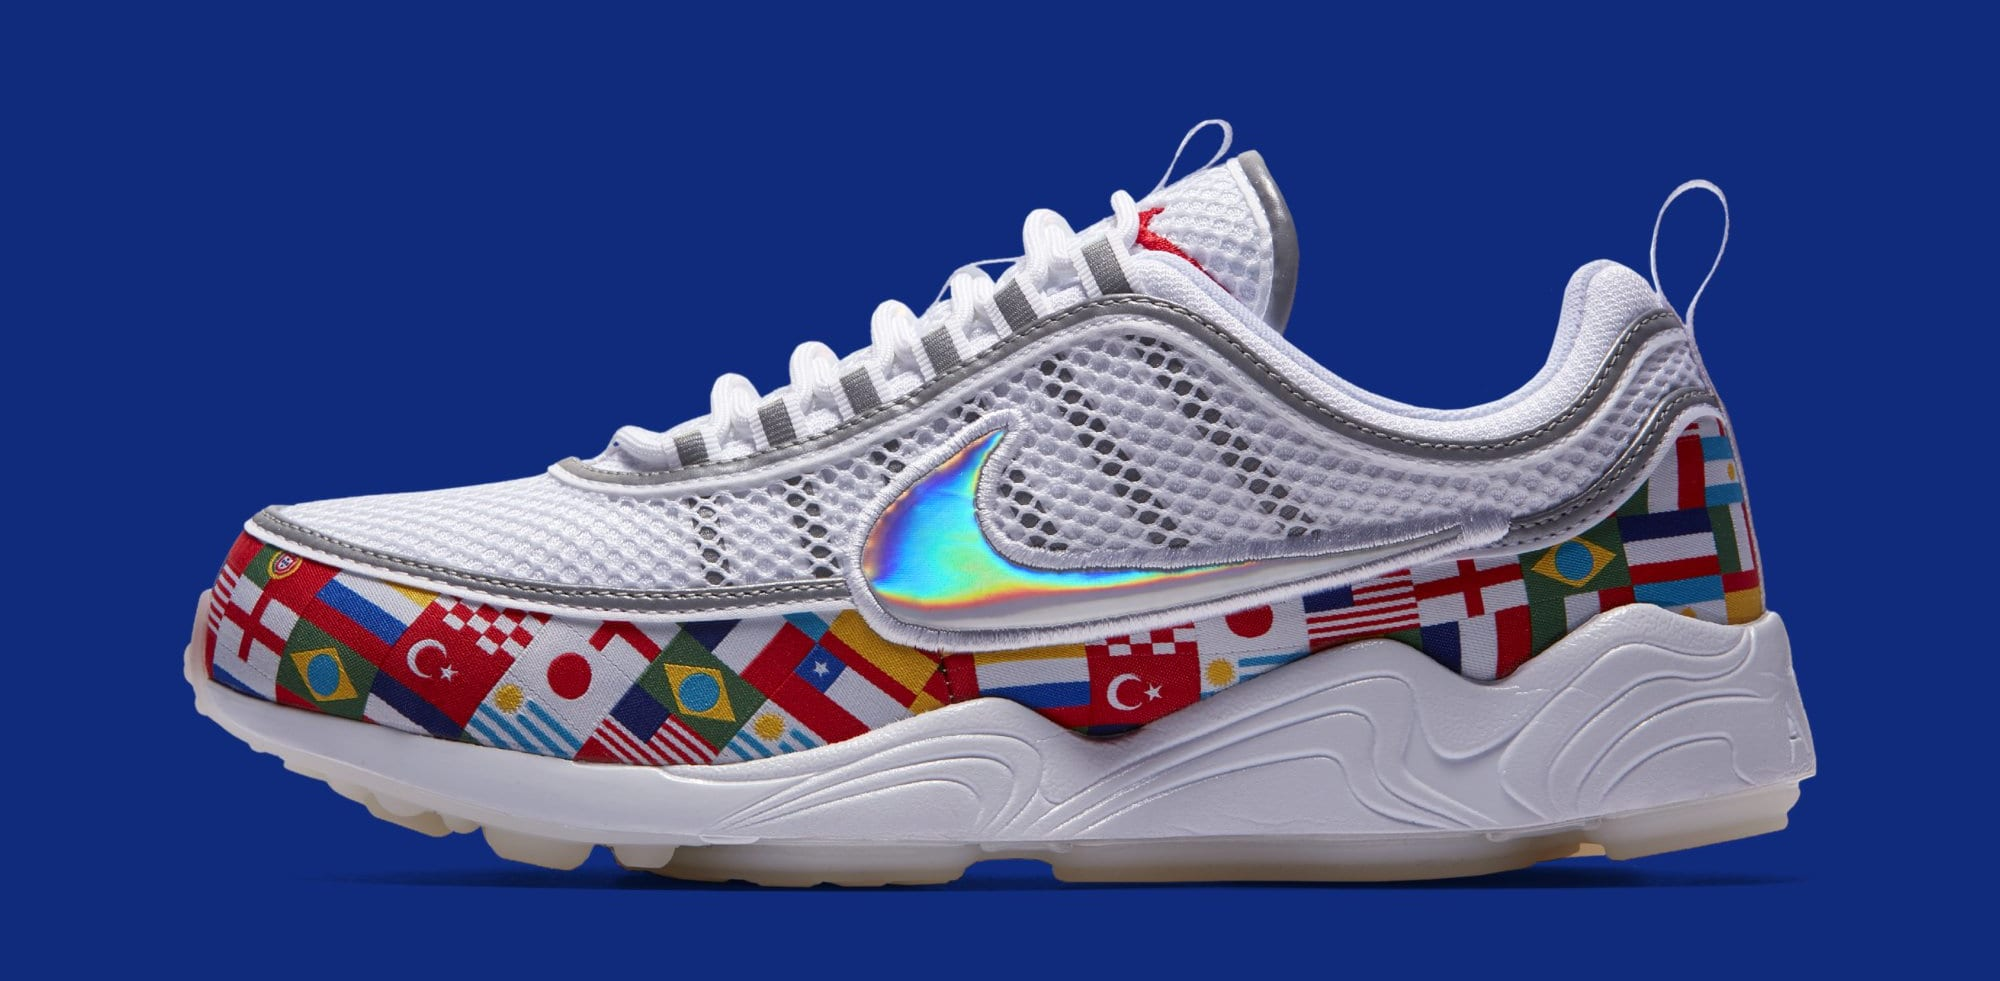 Nike Air Zoom Spiridon 'One World' AO5121-100 (Lateral)